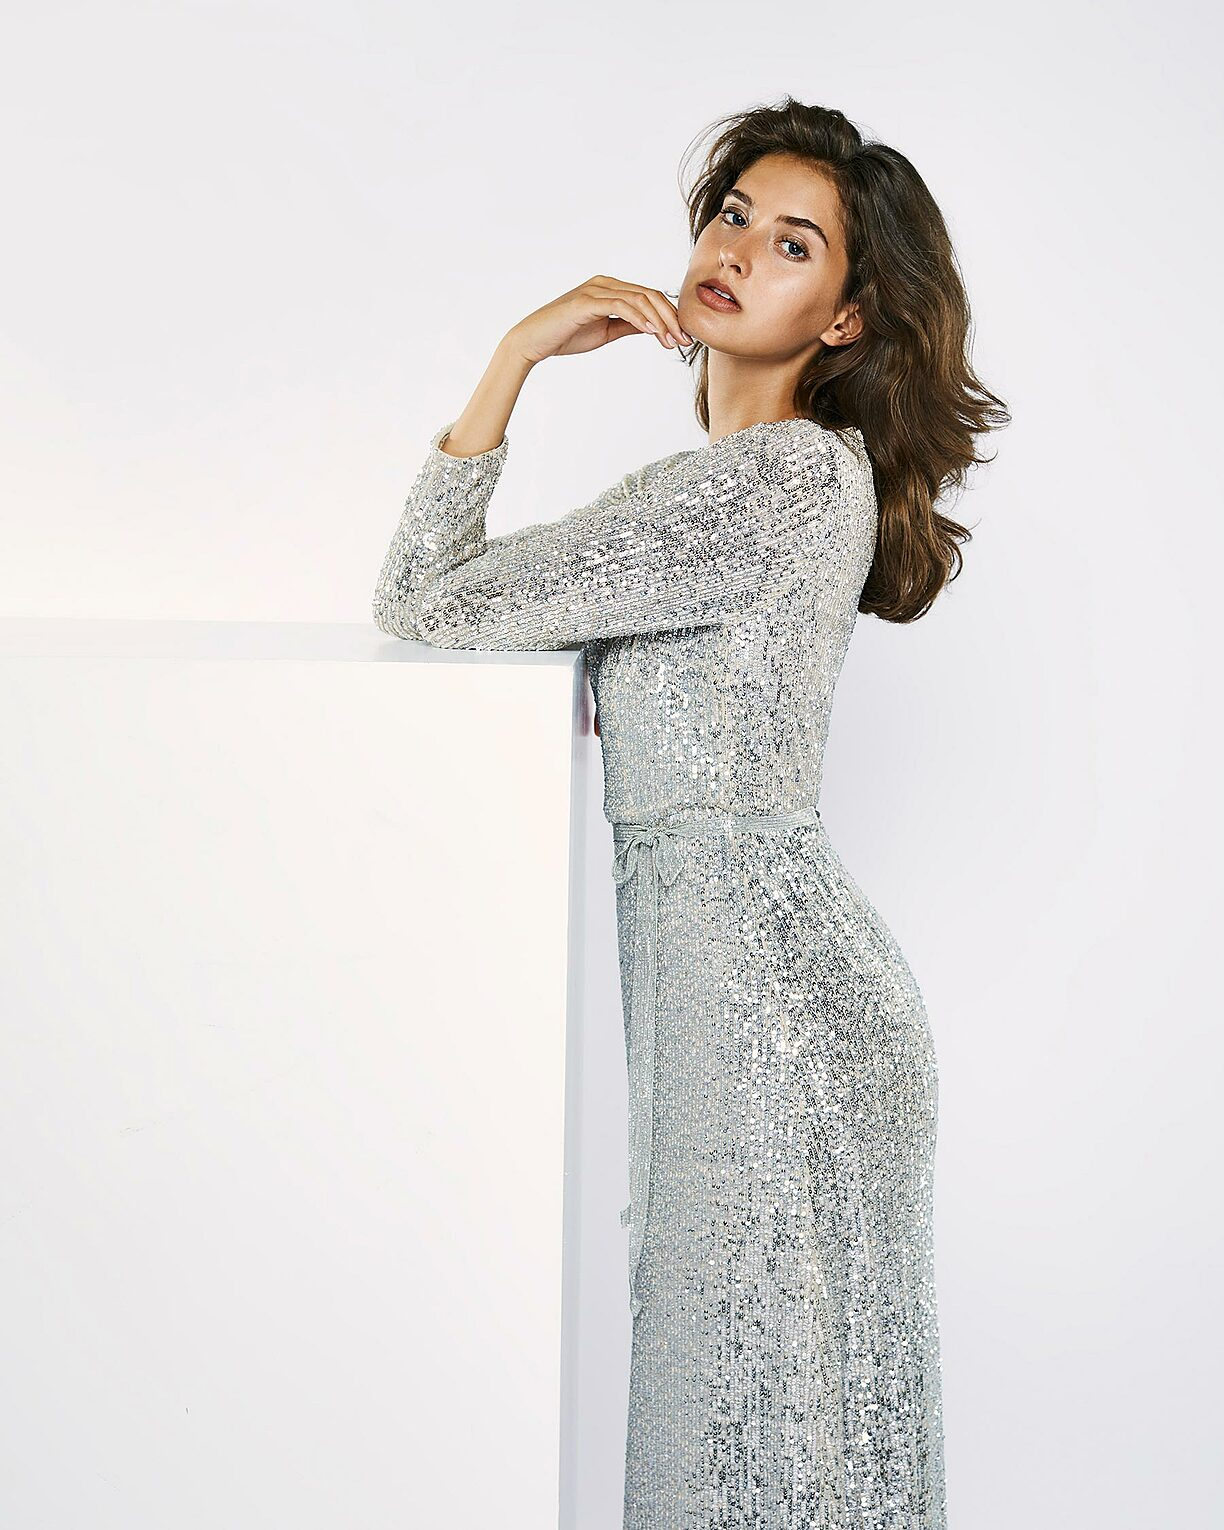 A brown hair model in a sparkling silver dress stand in a white setting